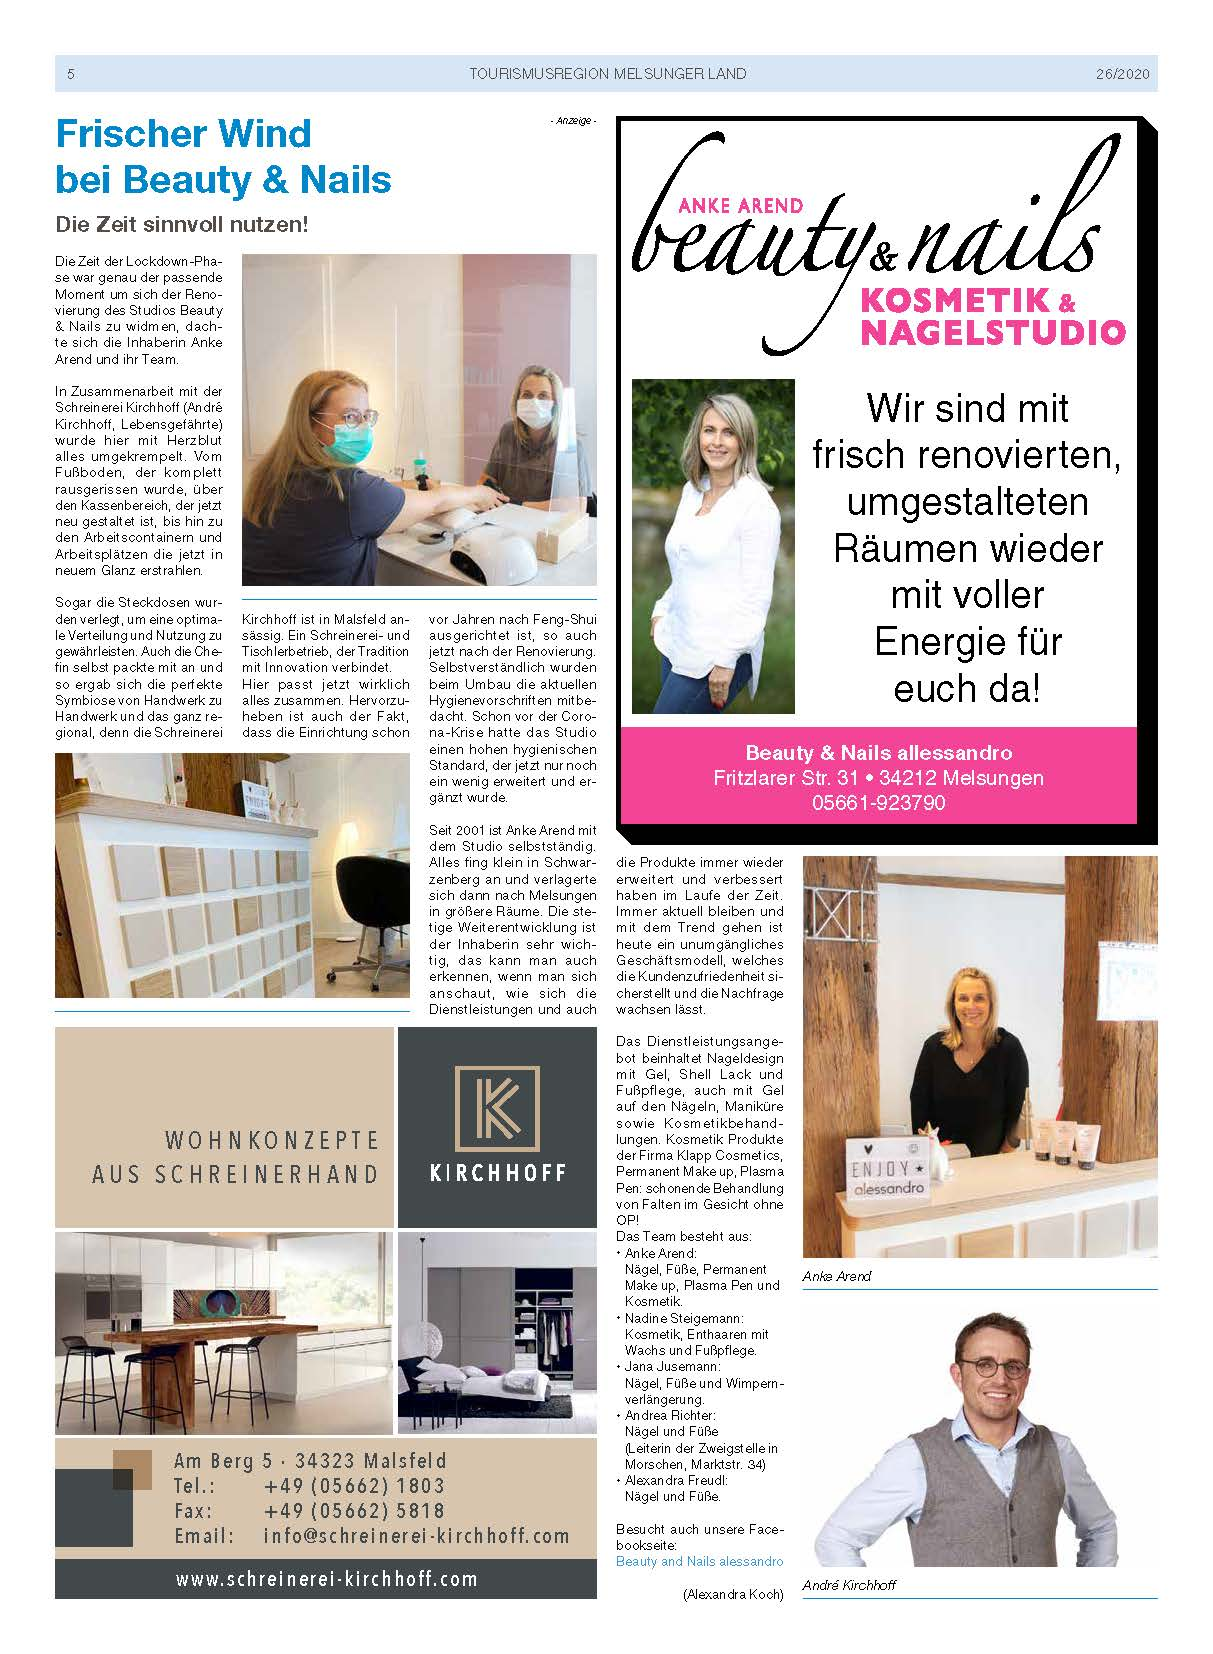 Renovierung des Studios Beauty & Nails